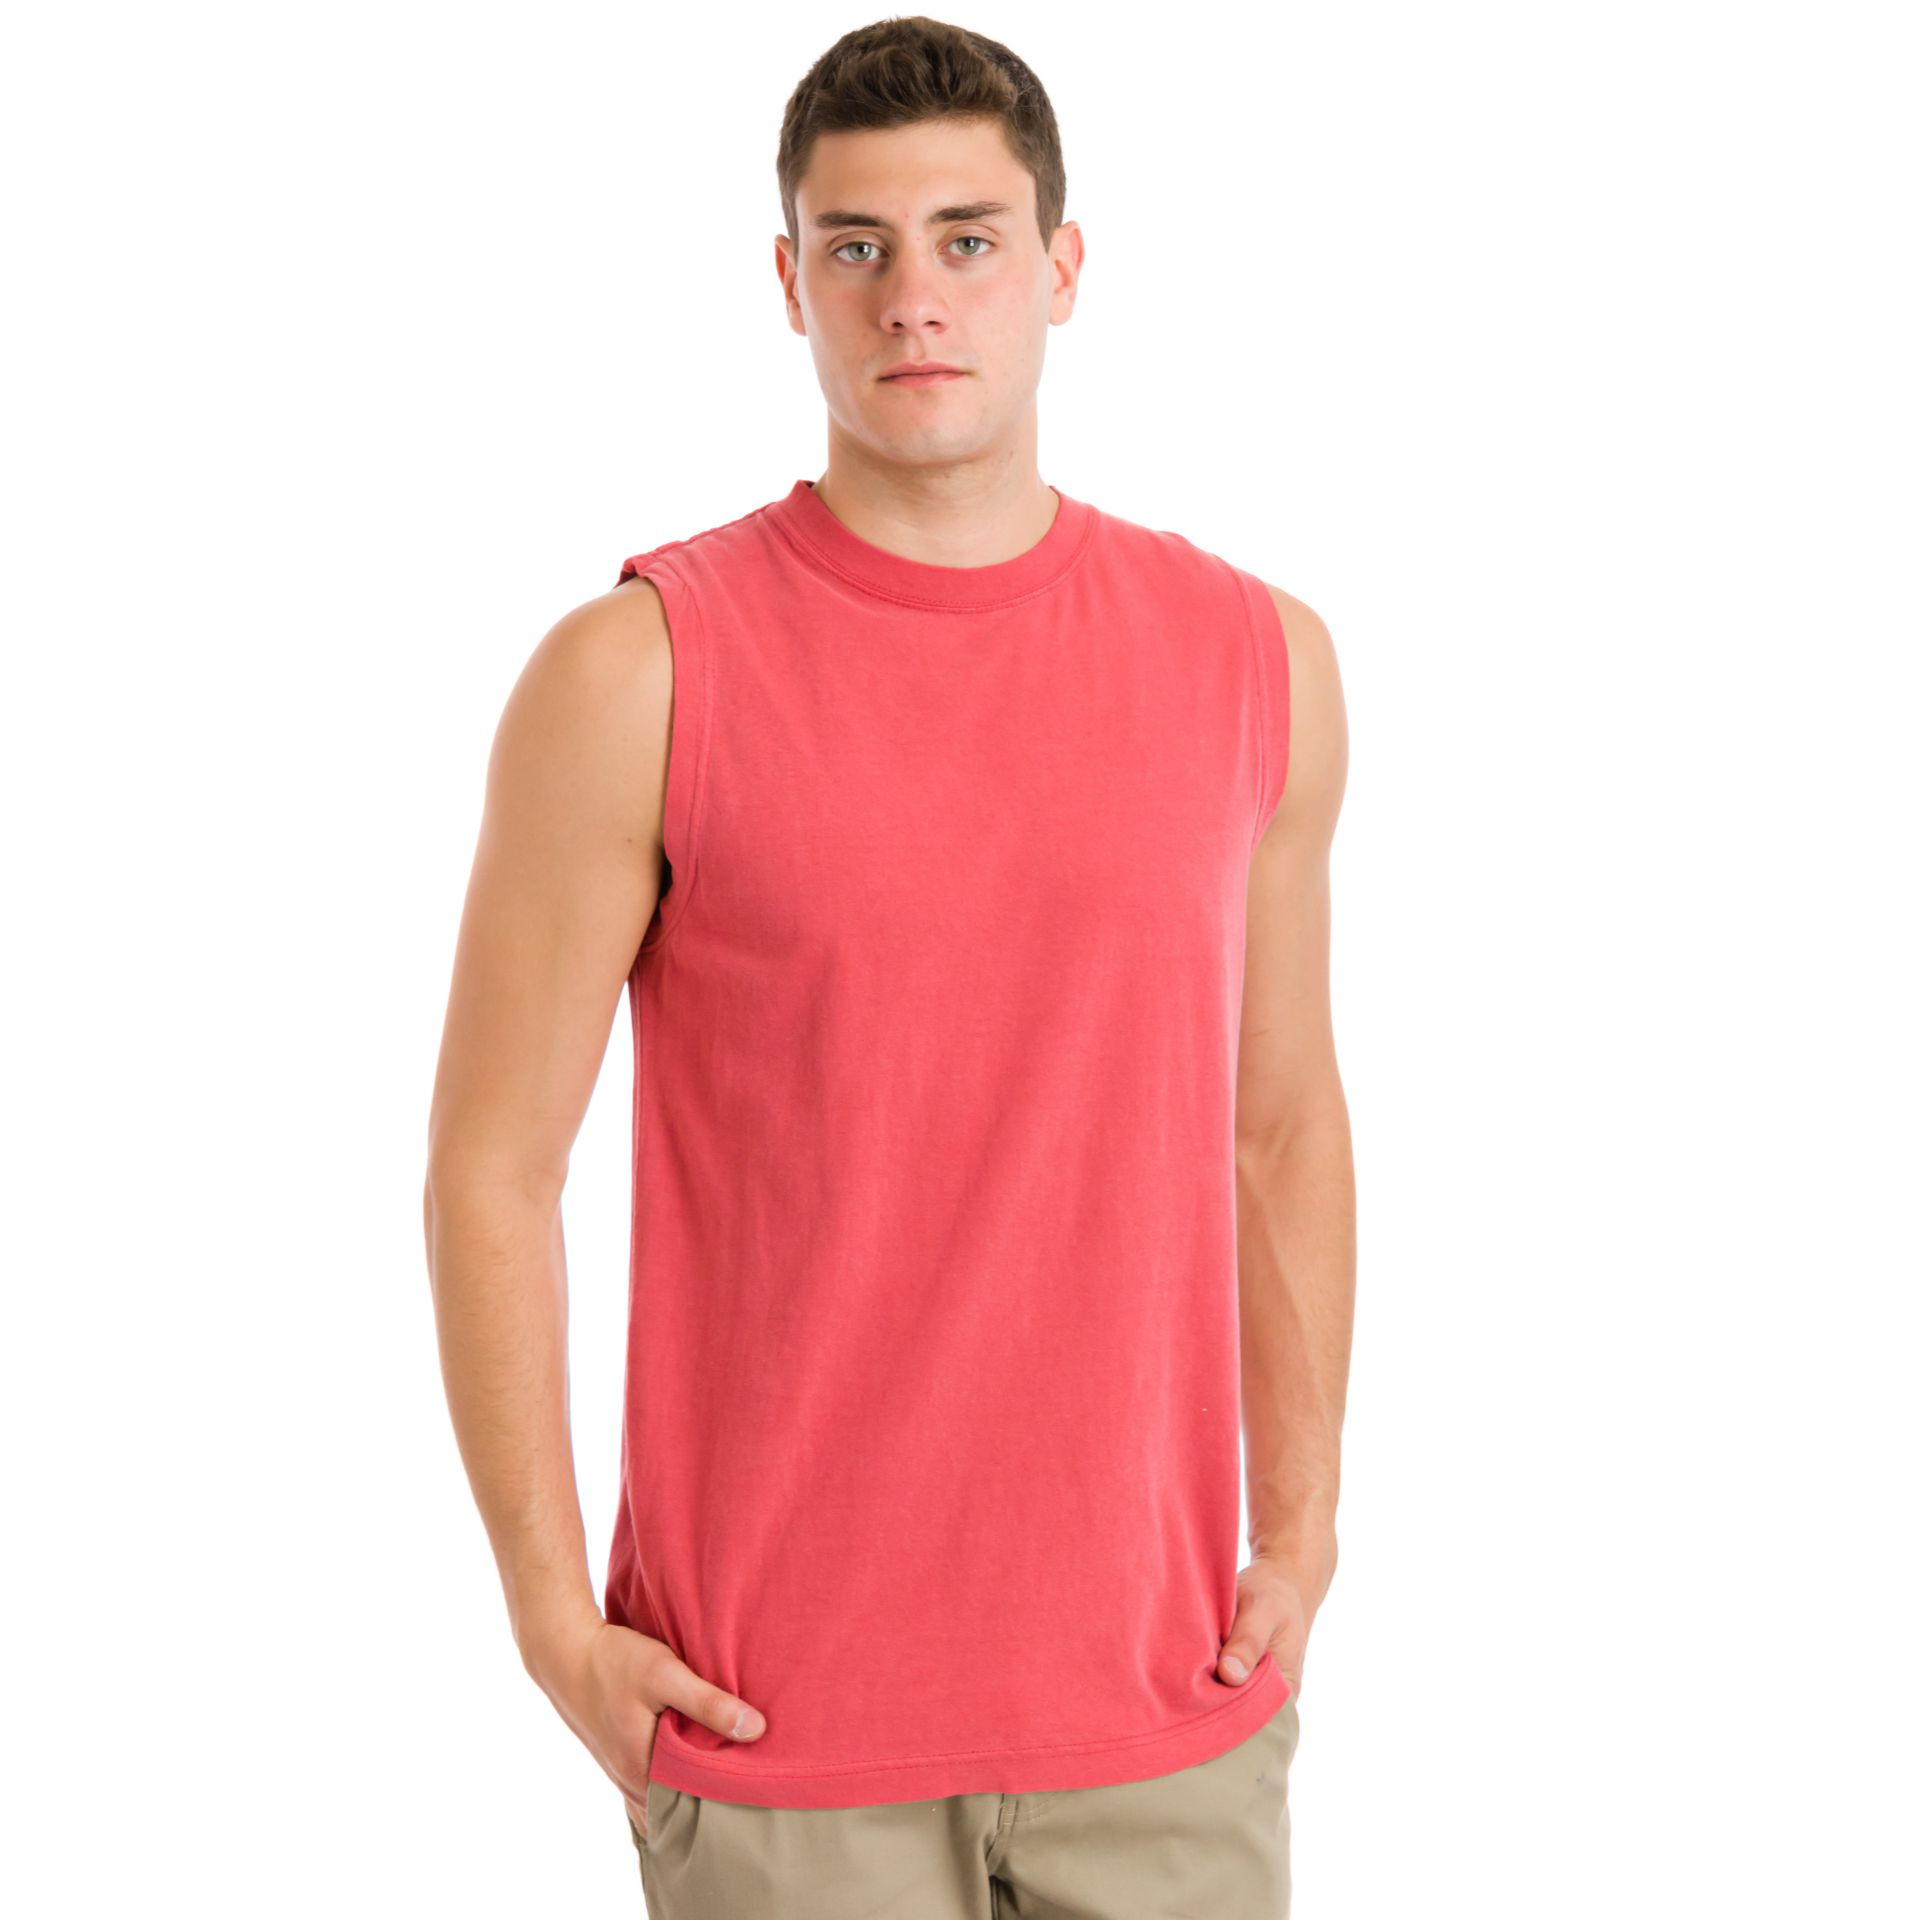 Mens Tank Tops cheap for sale at discount prices, and find out more best Mens Tank Tops, insulated v neck tank top men, black tank top are hot-sale on NewChic, buy Mens Tank Tops in wholesale prices. We uses cookies (and similar techniques) to provide you with better products and services.